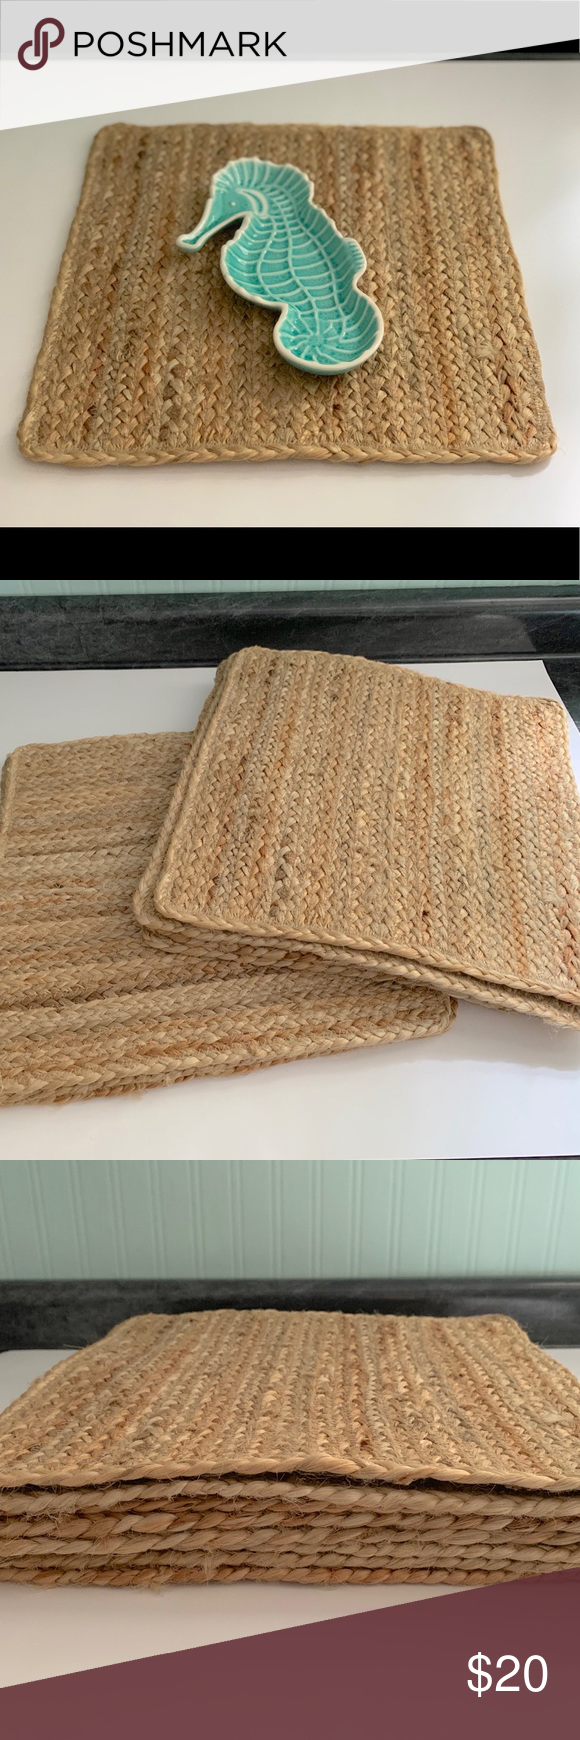 Jute Braid Set Of 8 Woven Square Placemats Square Placemats Woven Clothes Design